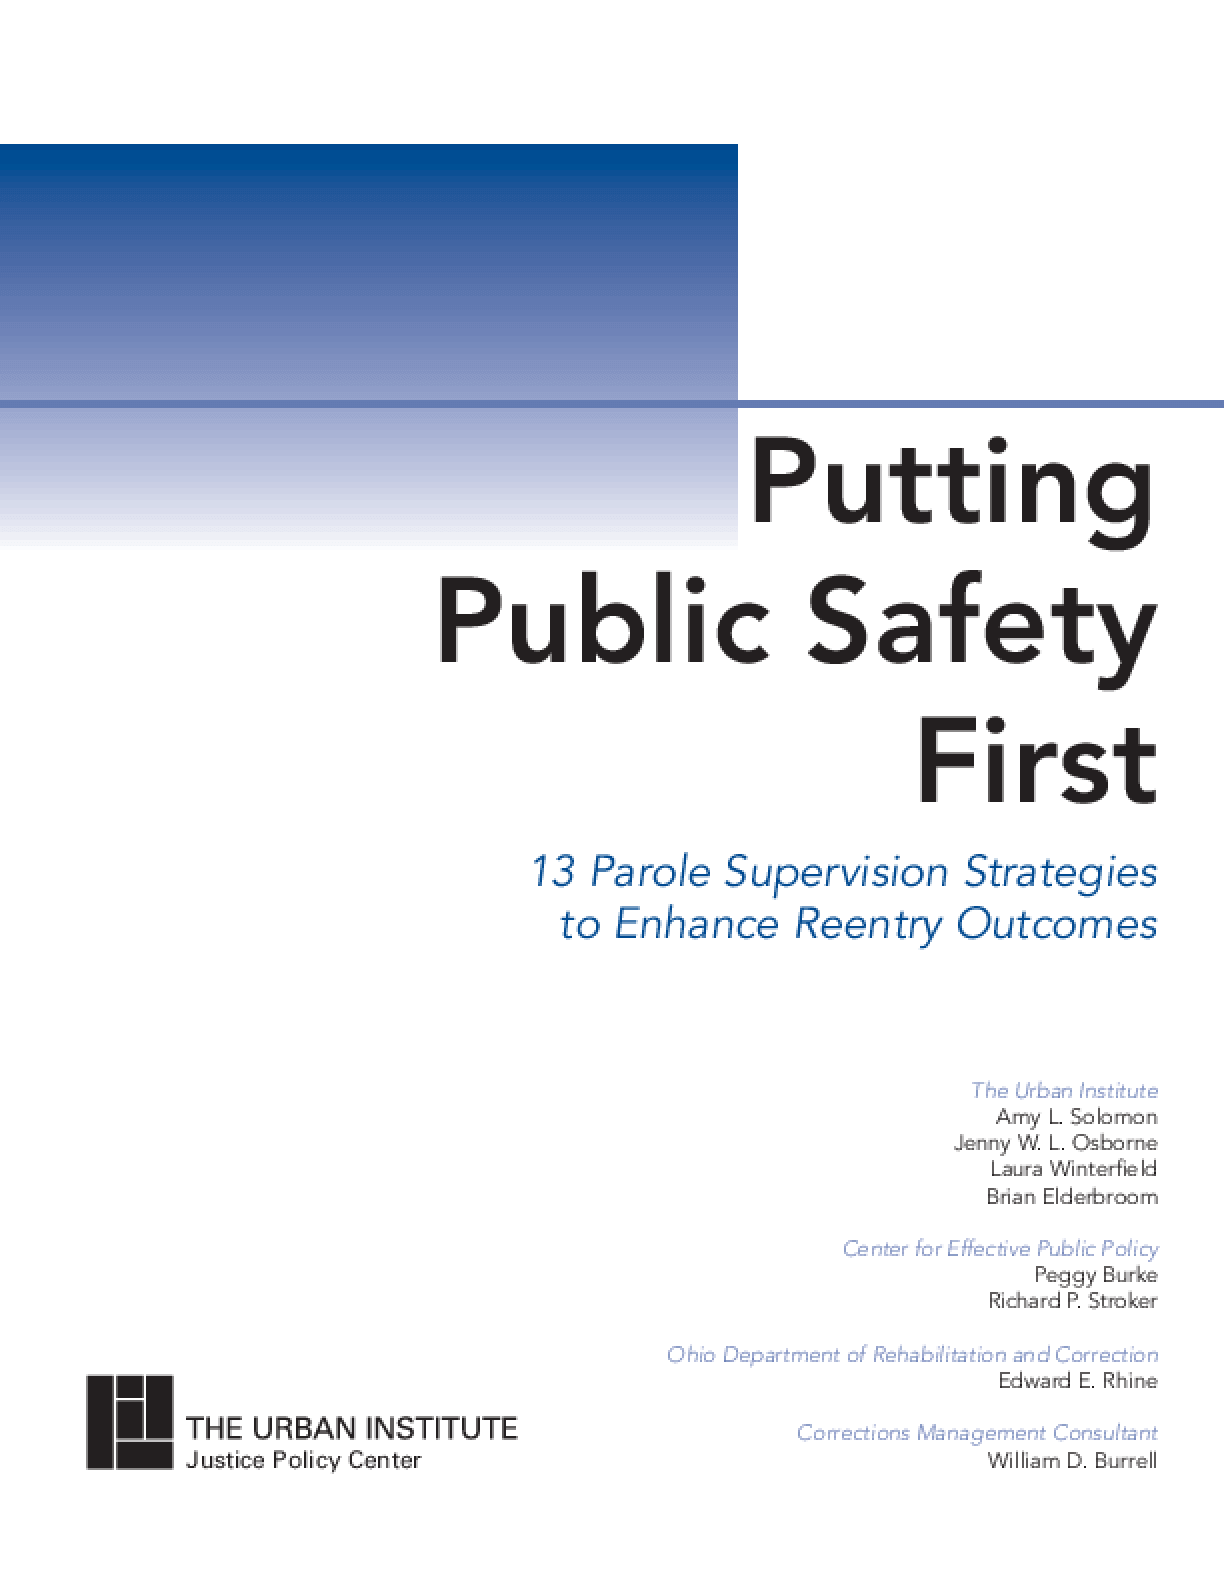 Putting Public Safety First: 13 Strategies for Successful Supervision and Reentry